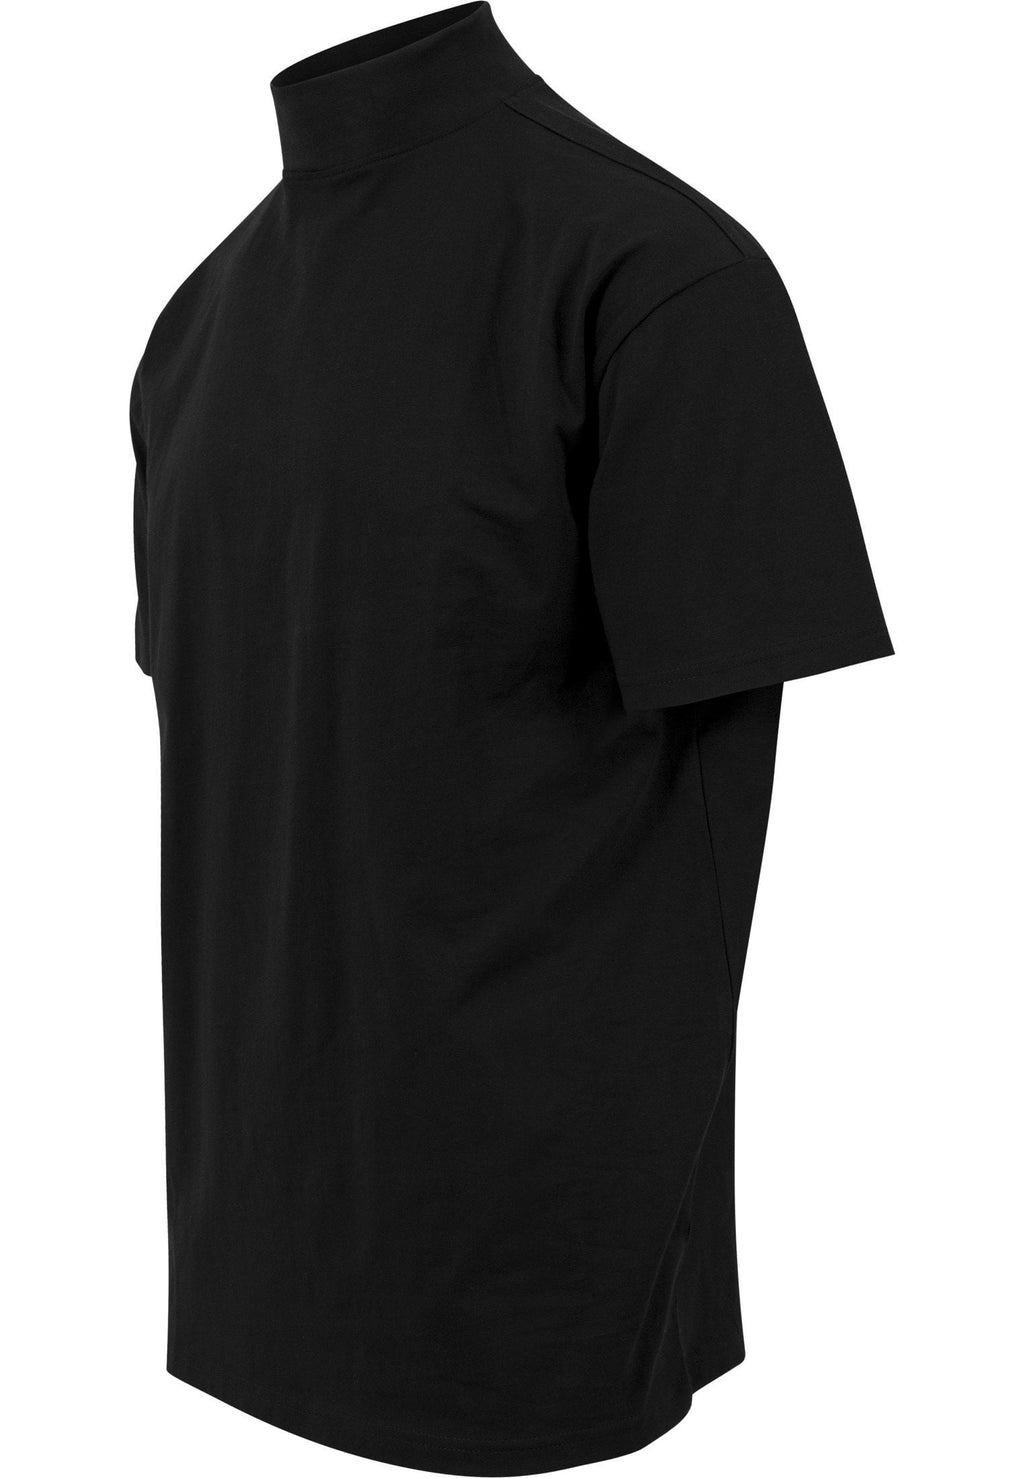 Oversized Turtleneck Tee - Black